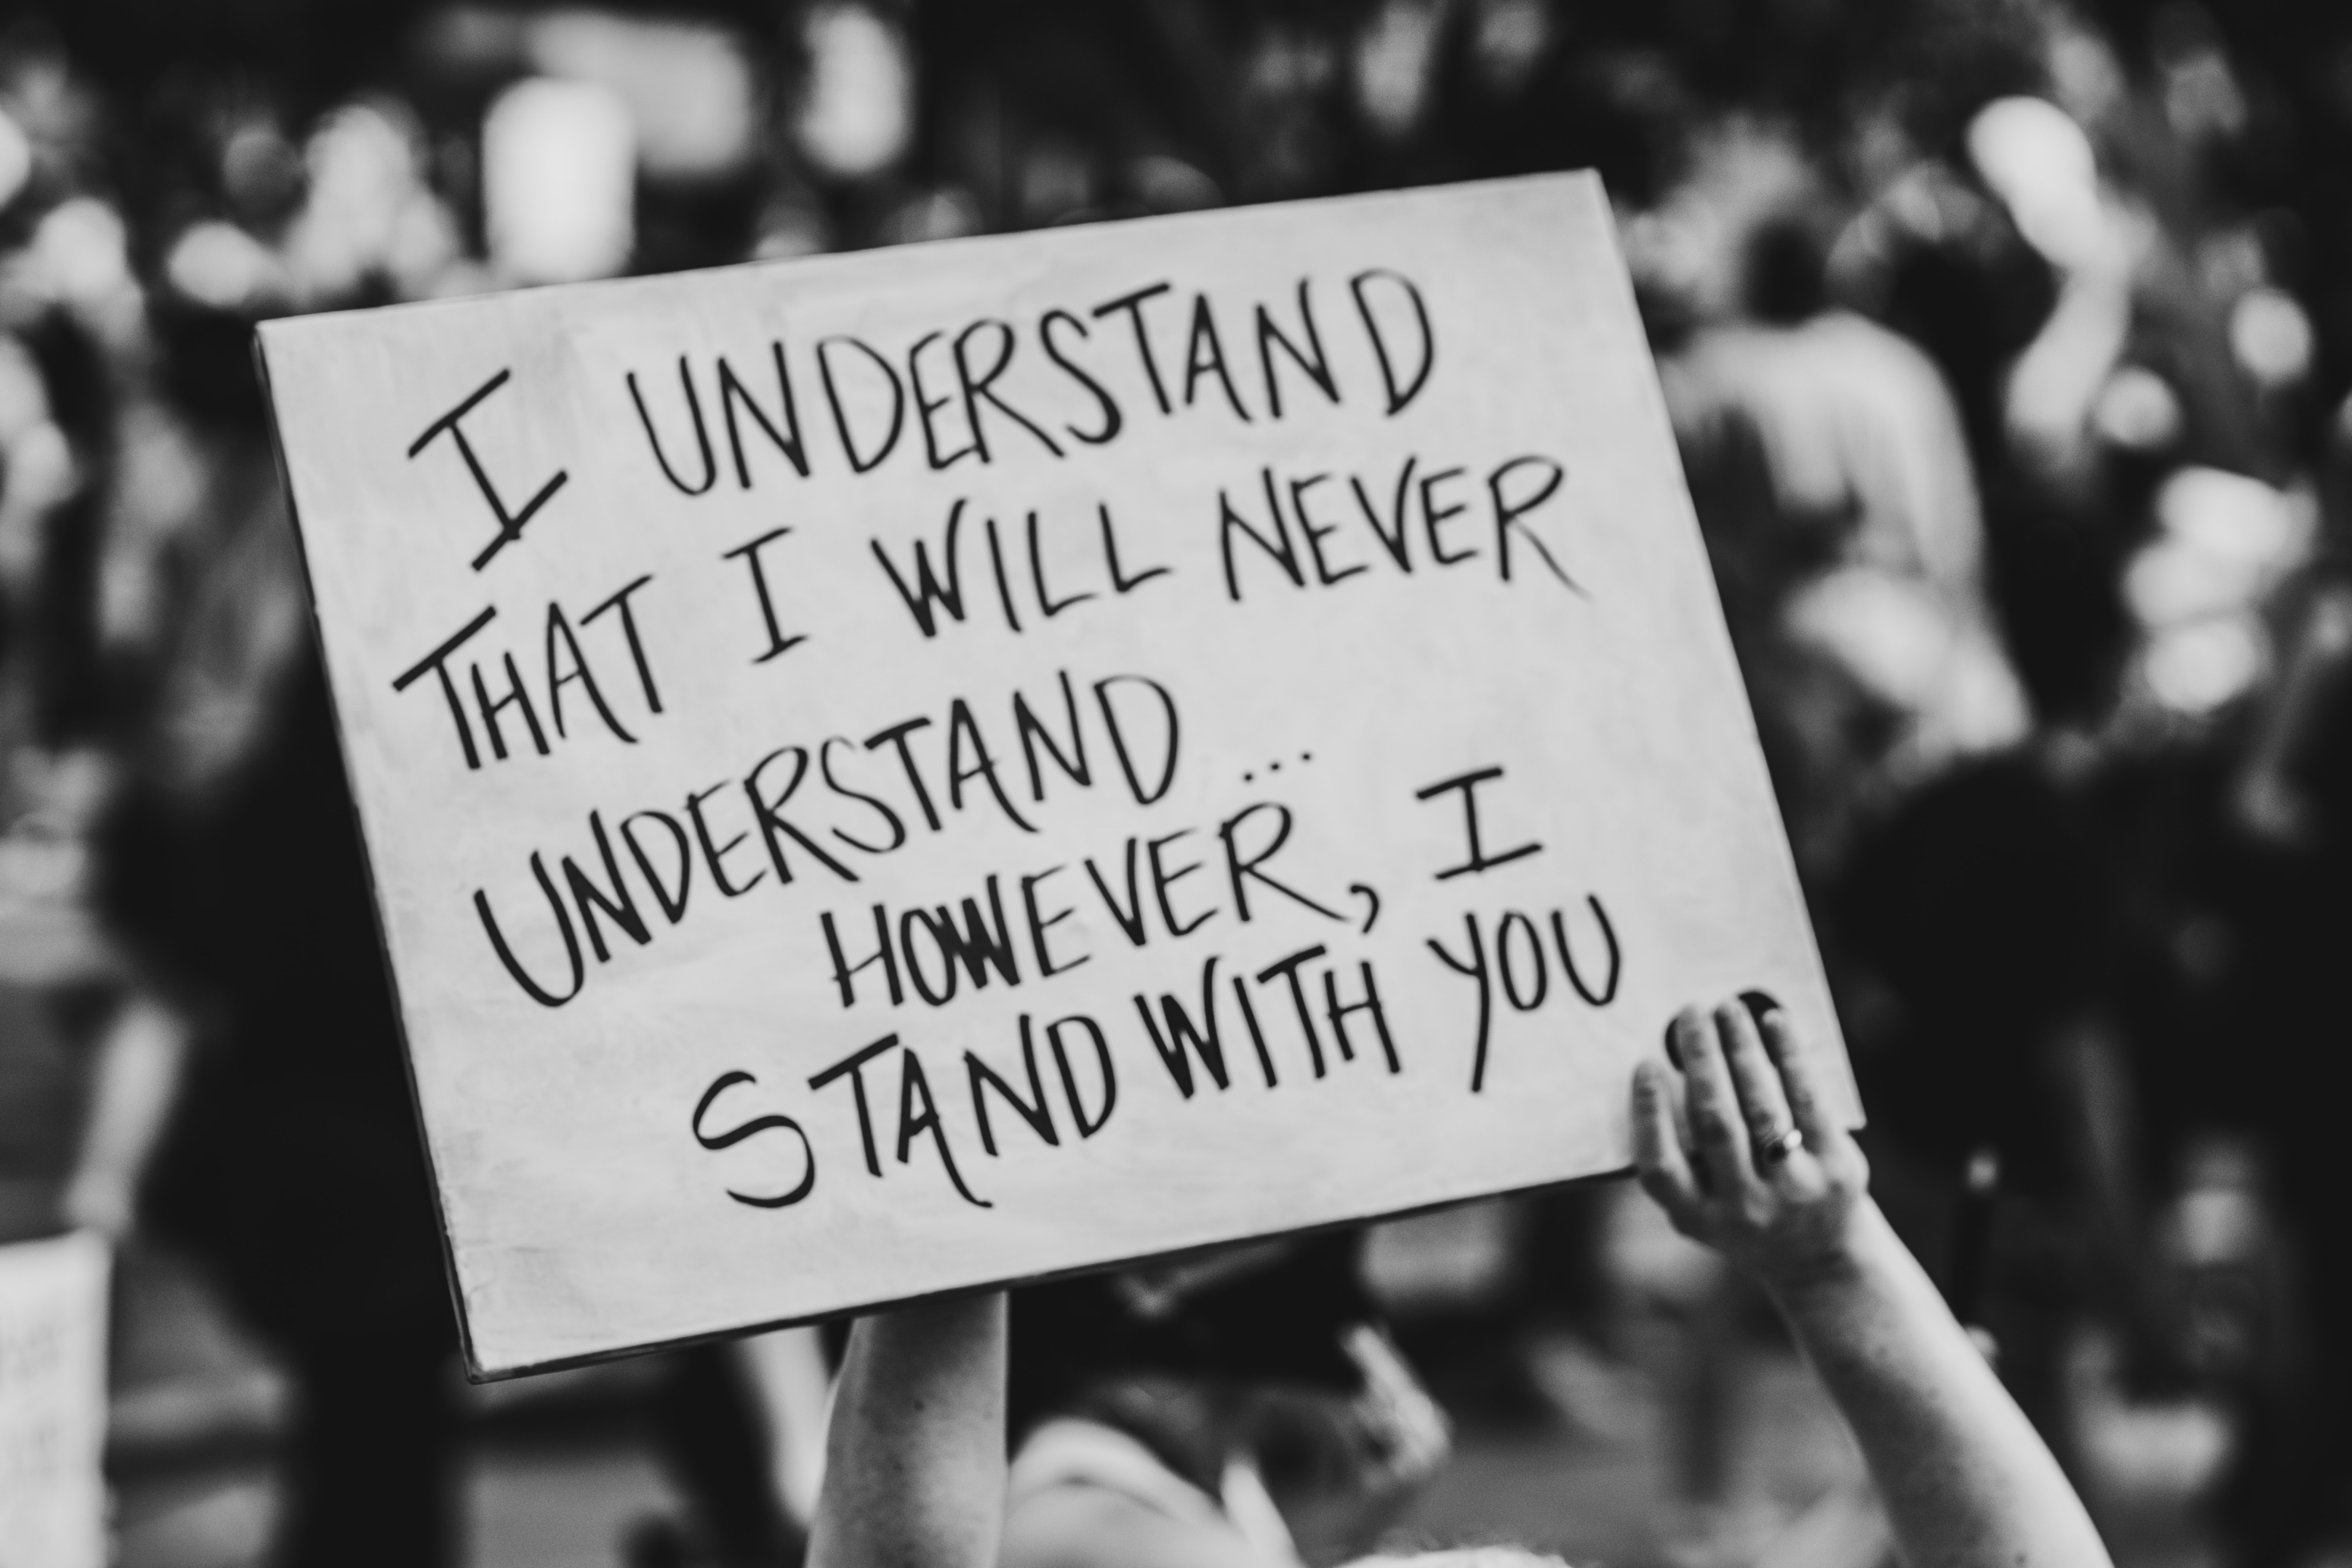 """A placard that reads """"I understand That I will never understand... However, I will stand with you"""""""